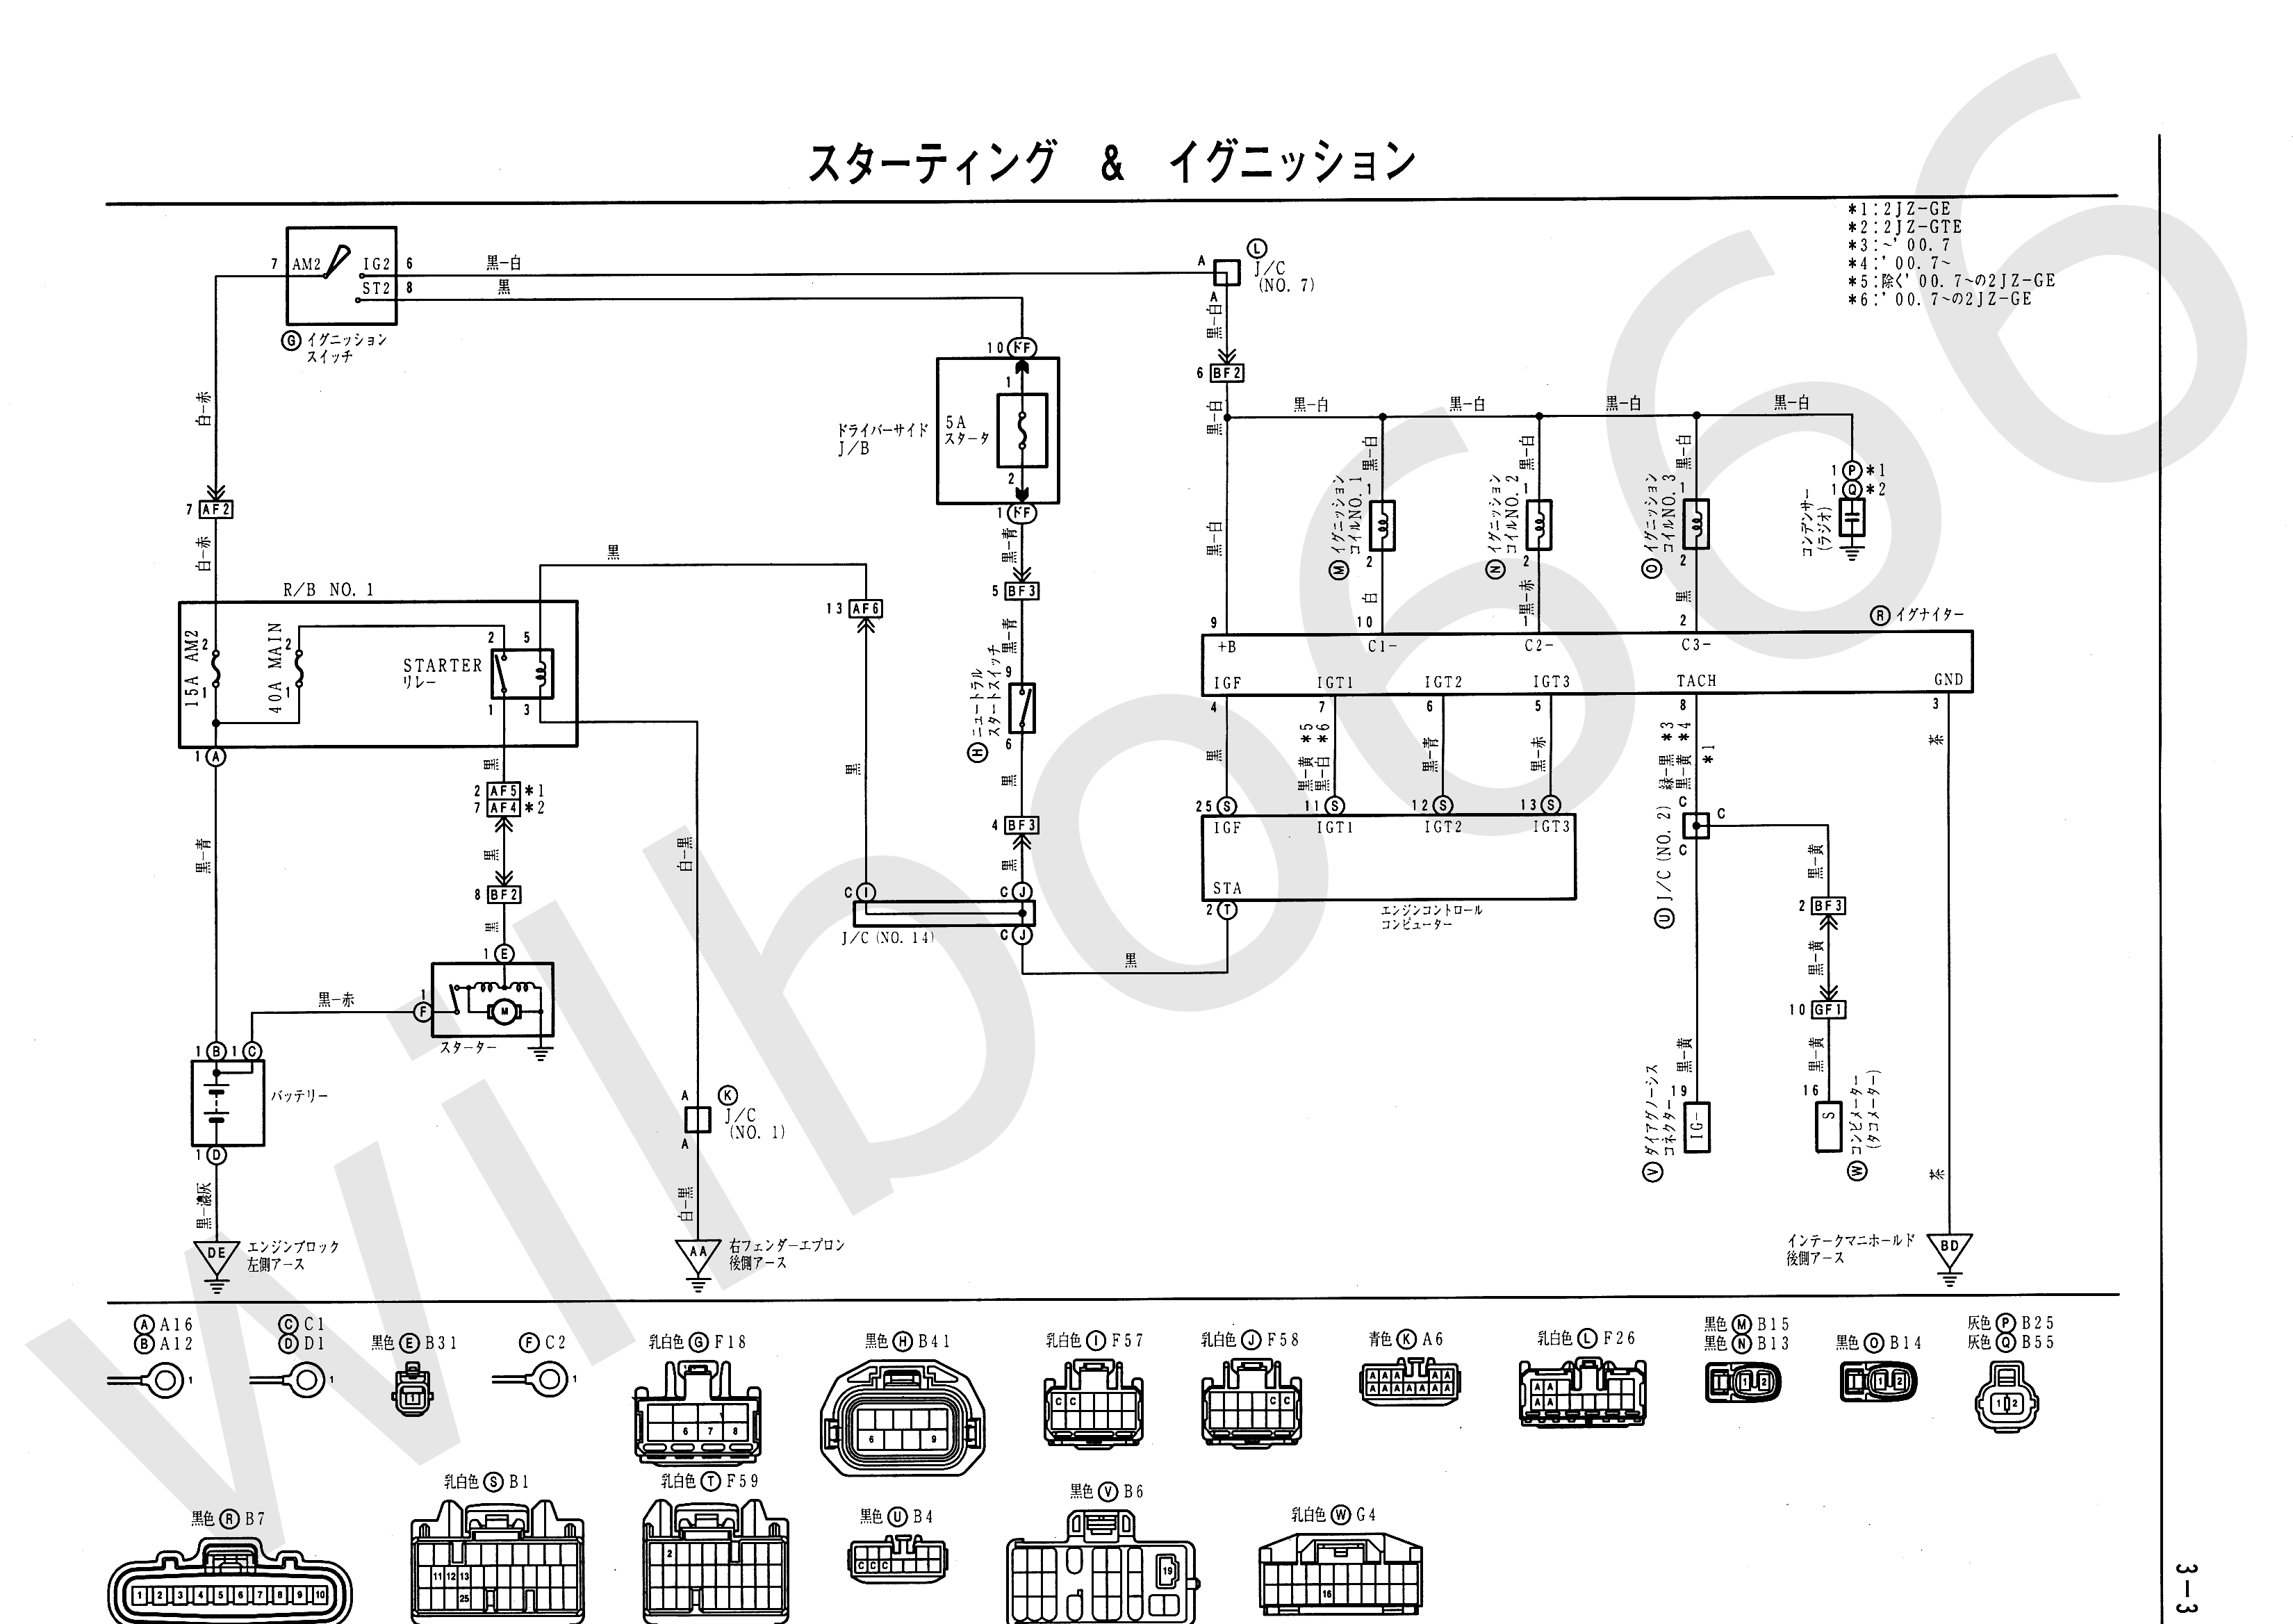 JZS161 Electrical Wiring Diagram 6748505 3 3 wilbo666 2jz gte vvti jzs161 aristo engine wiring  at bakdesigns.co